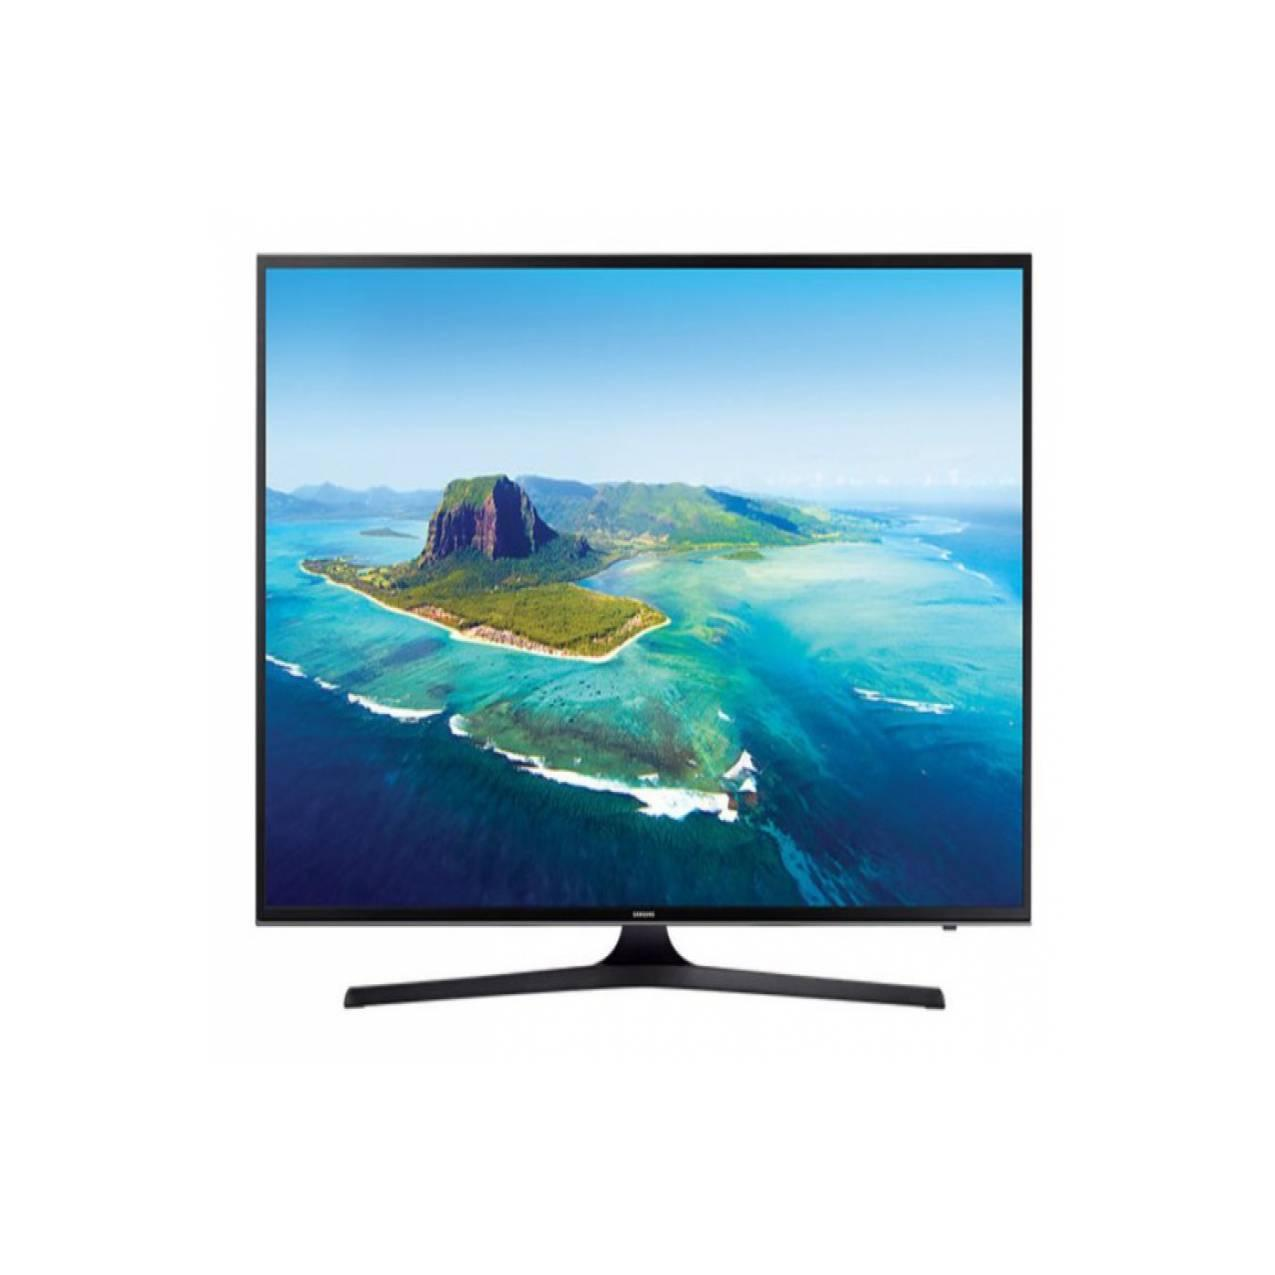 PROMO LED TV 40 INCH SAMSUNG 40KU6000 UHD 4K SMART TV MURAH